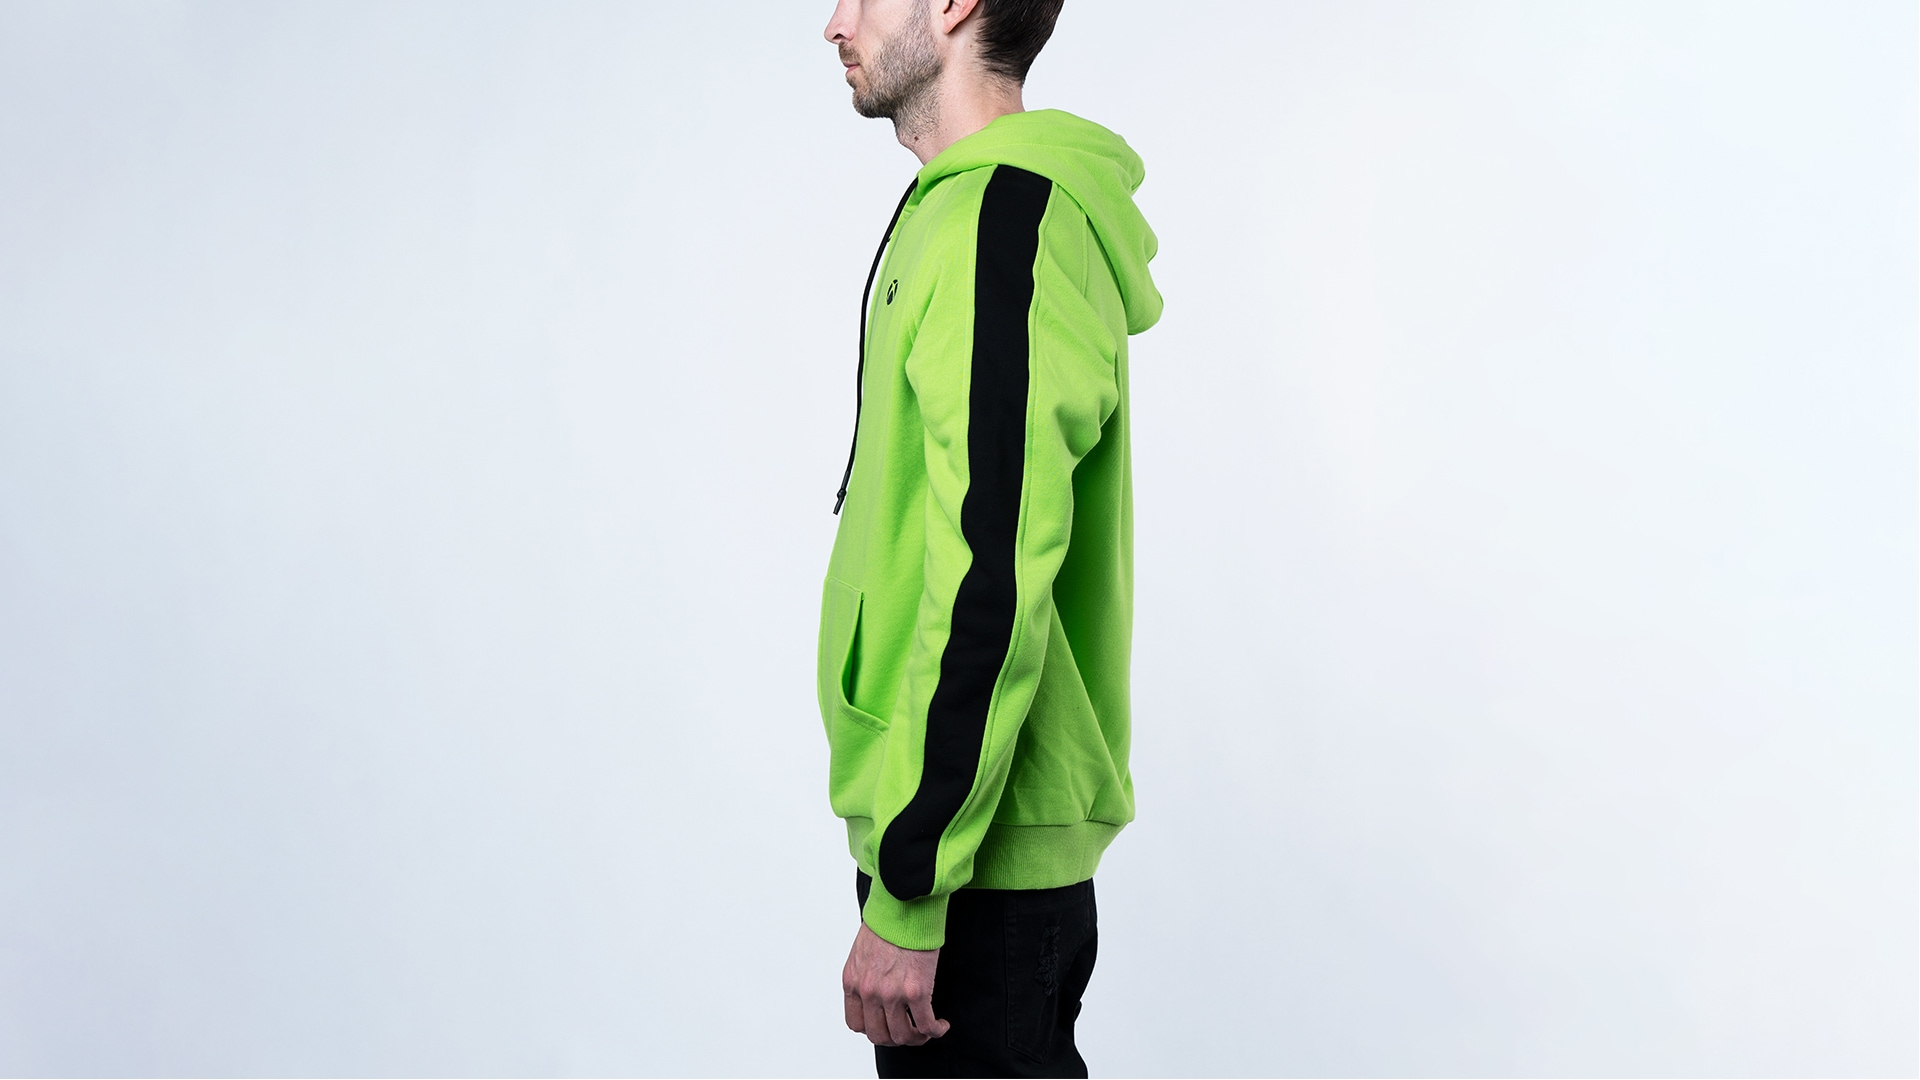 A man wearing the Colour Block Hoodie